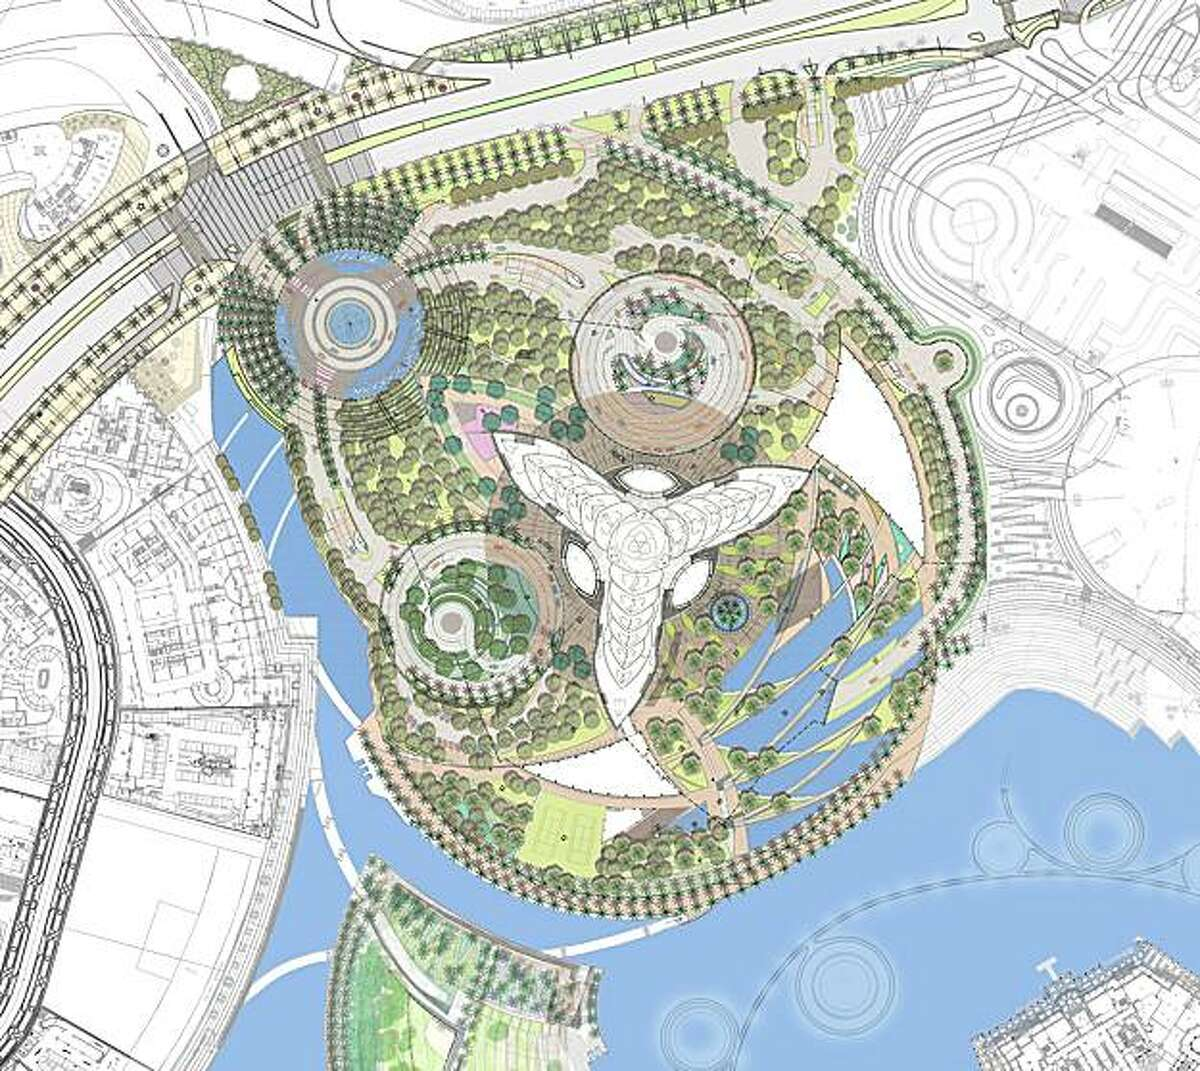 The site plan for the 27 acre park surrounding Burj Khalifa (the Y-shaped form in the middle). The park was designed by SWA Group, a Sausalito based landscape architecture firm.